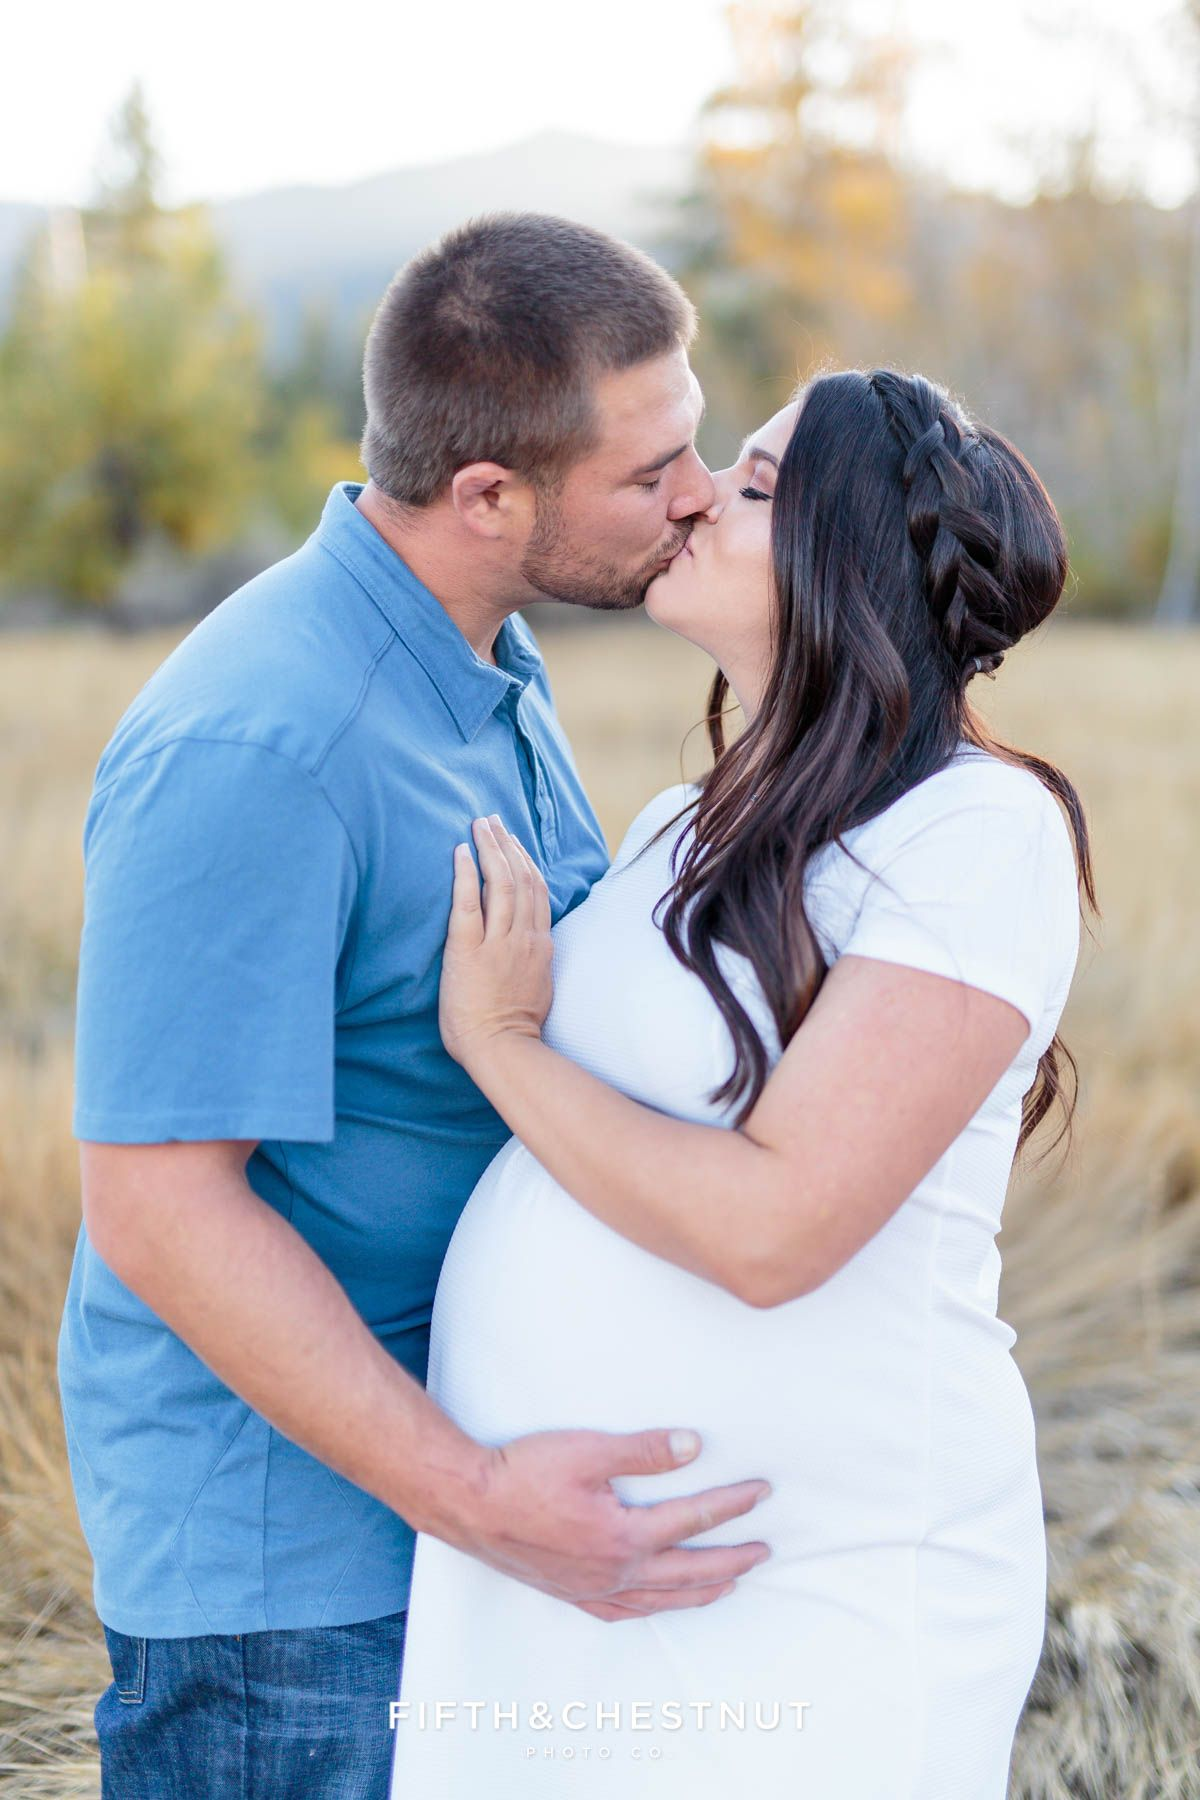 Husband And Wife Kiss For Their Fall Maternity Portraits By Reno Photographer In An Le Orchard Field With Mountains Behind Them